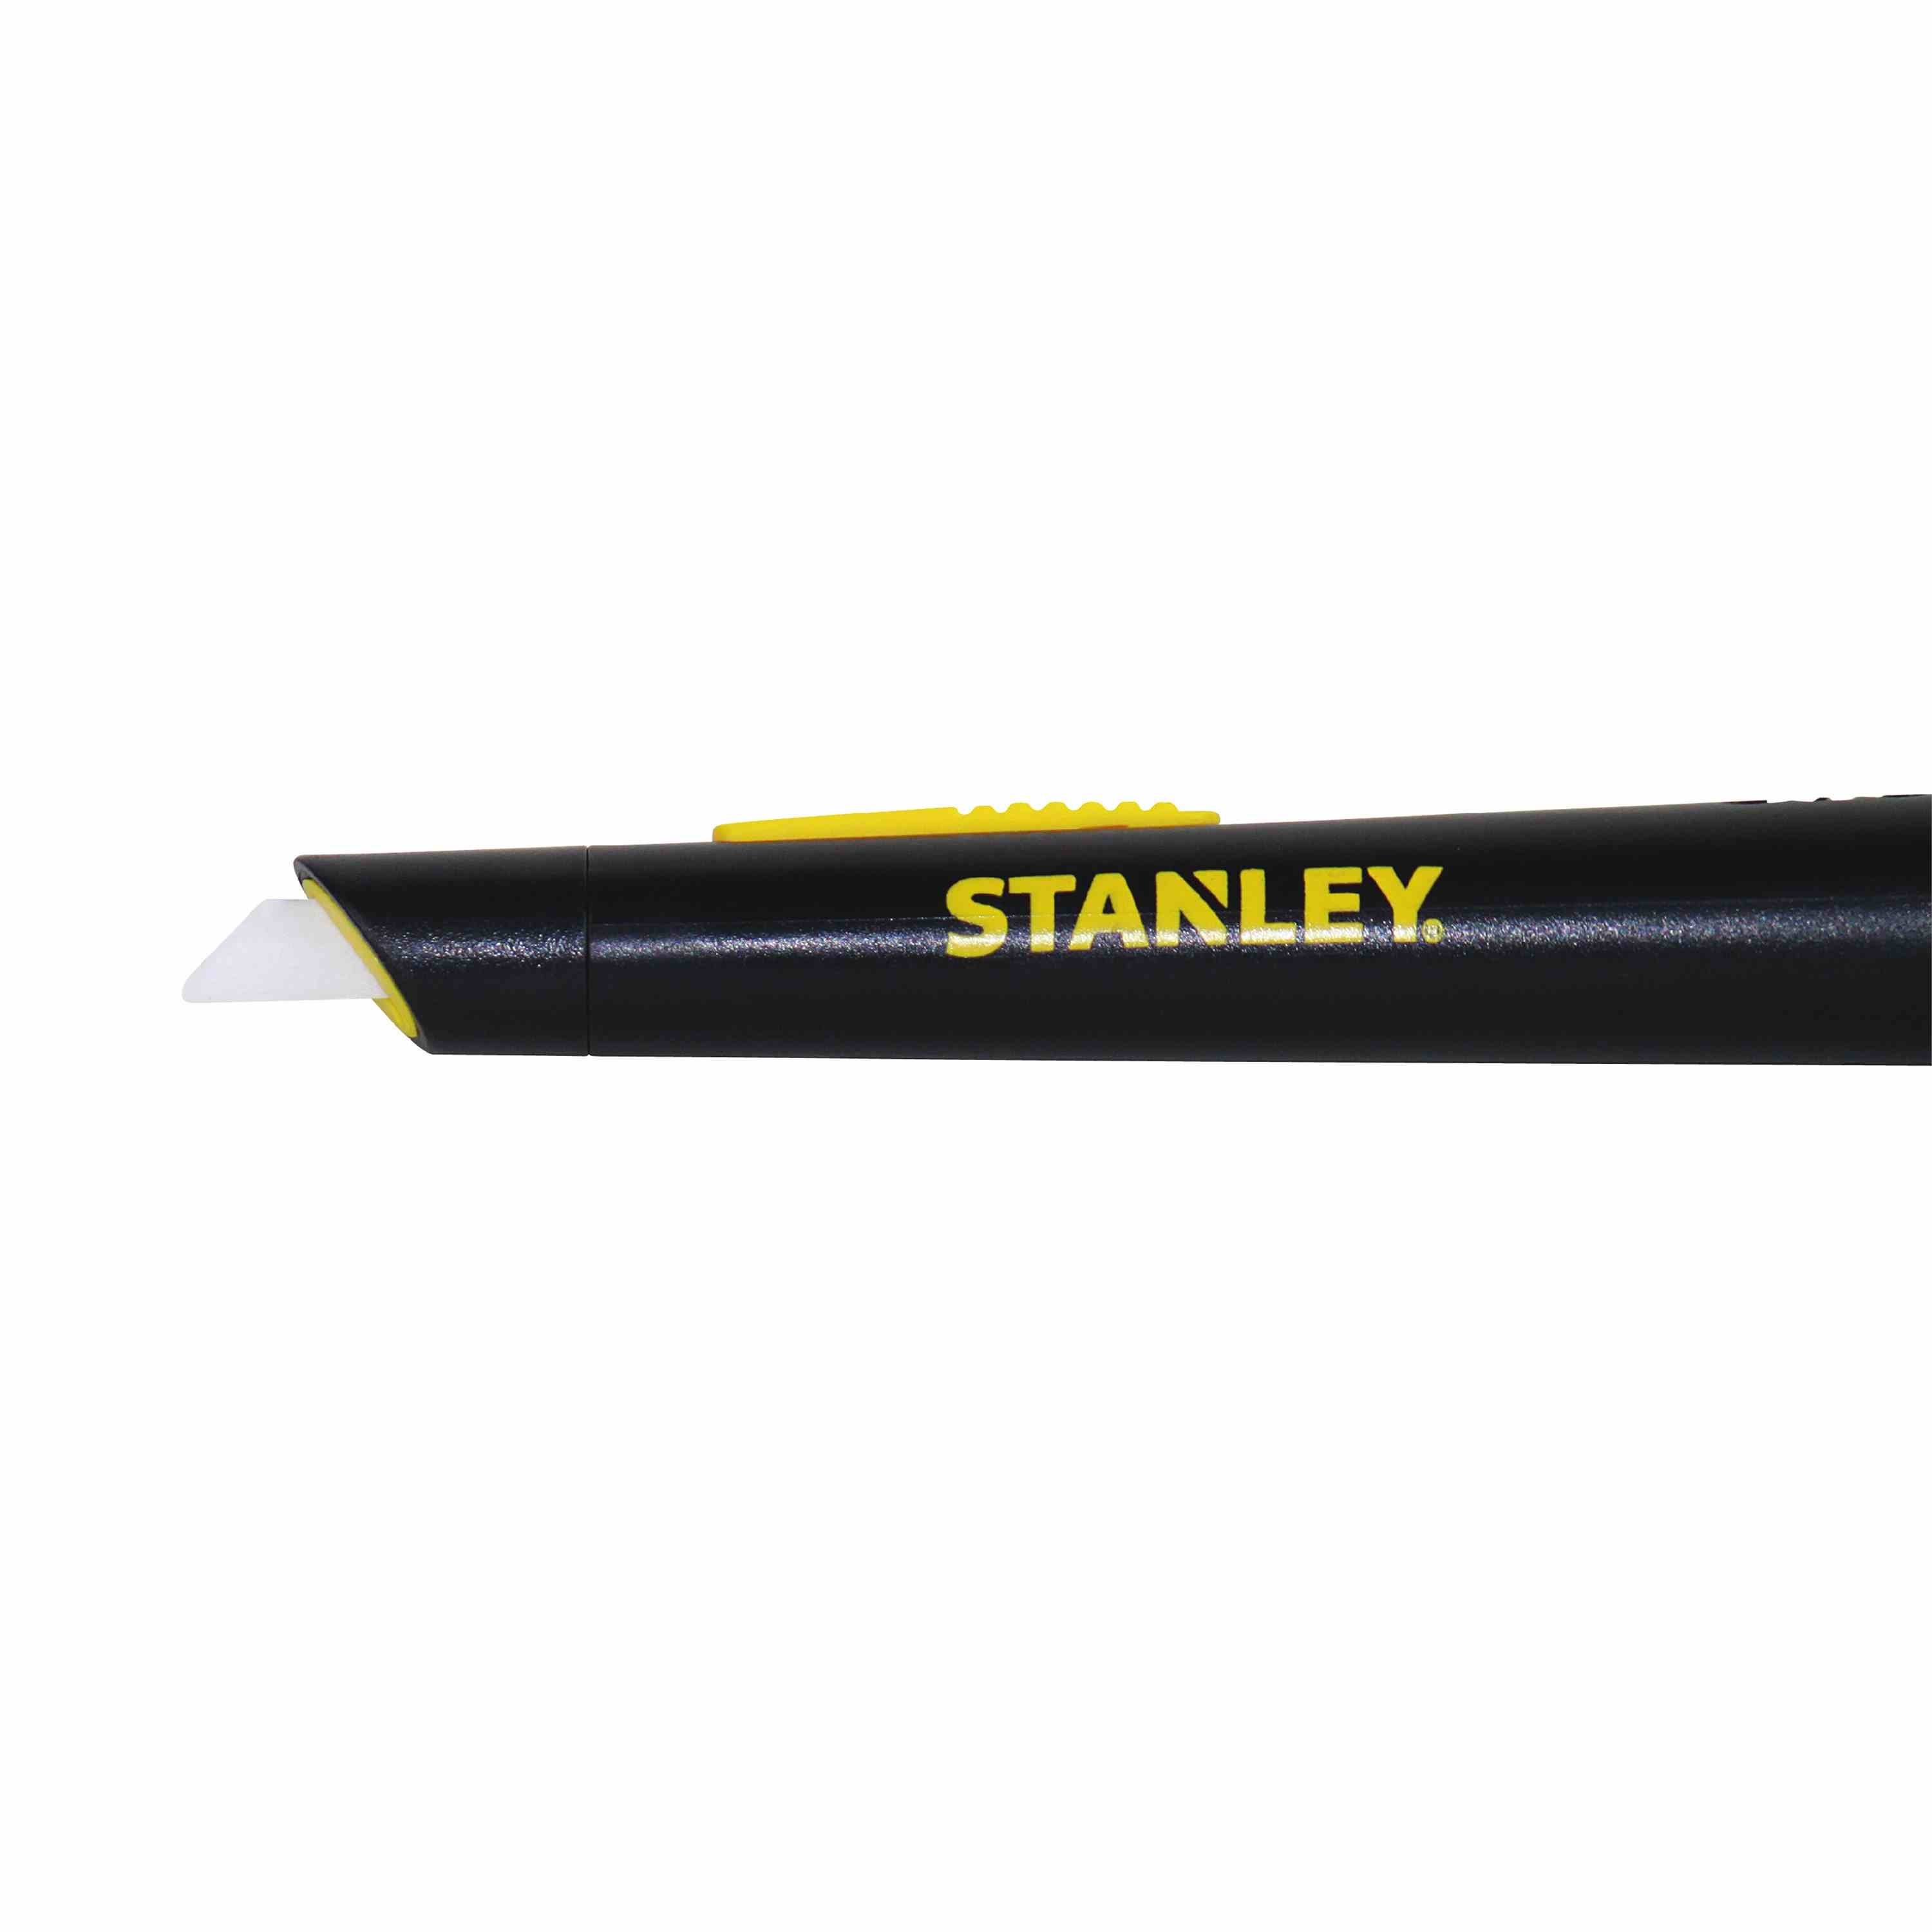 Stanley Tools - Ceramic PenStyle Safety Cutter - STHT10293